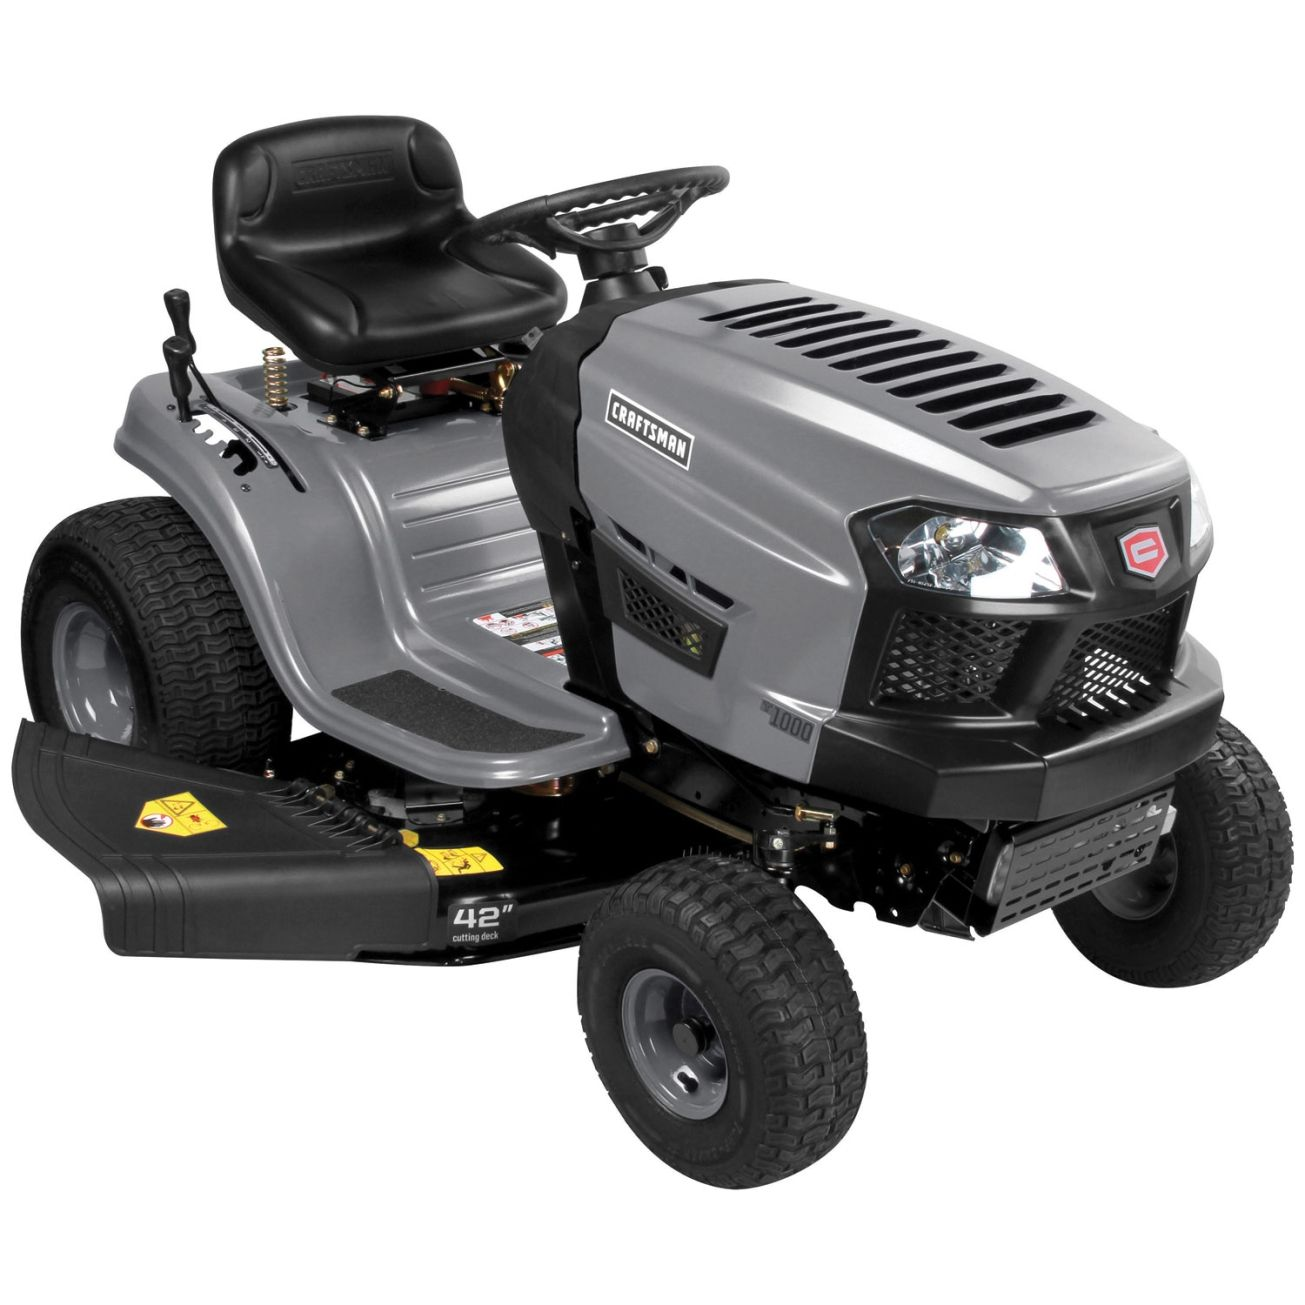 Craftsman 7 Speed 2 Blade Lawn Tractor 07120370 Riding